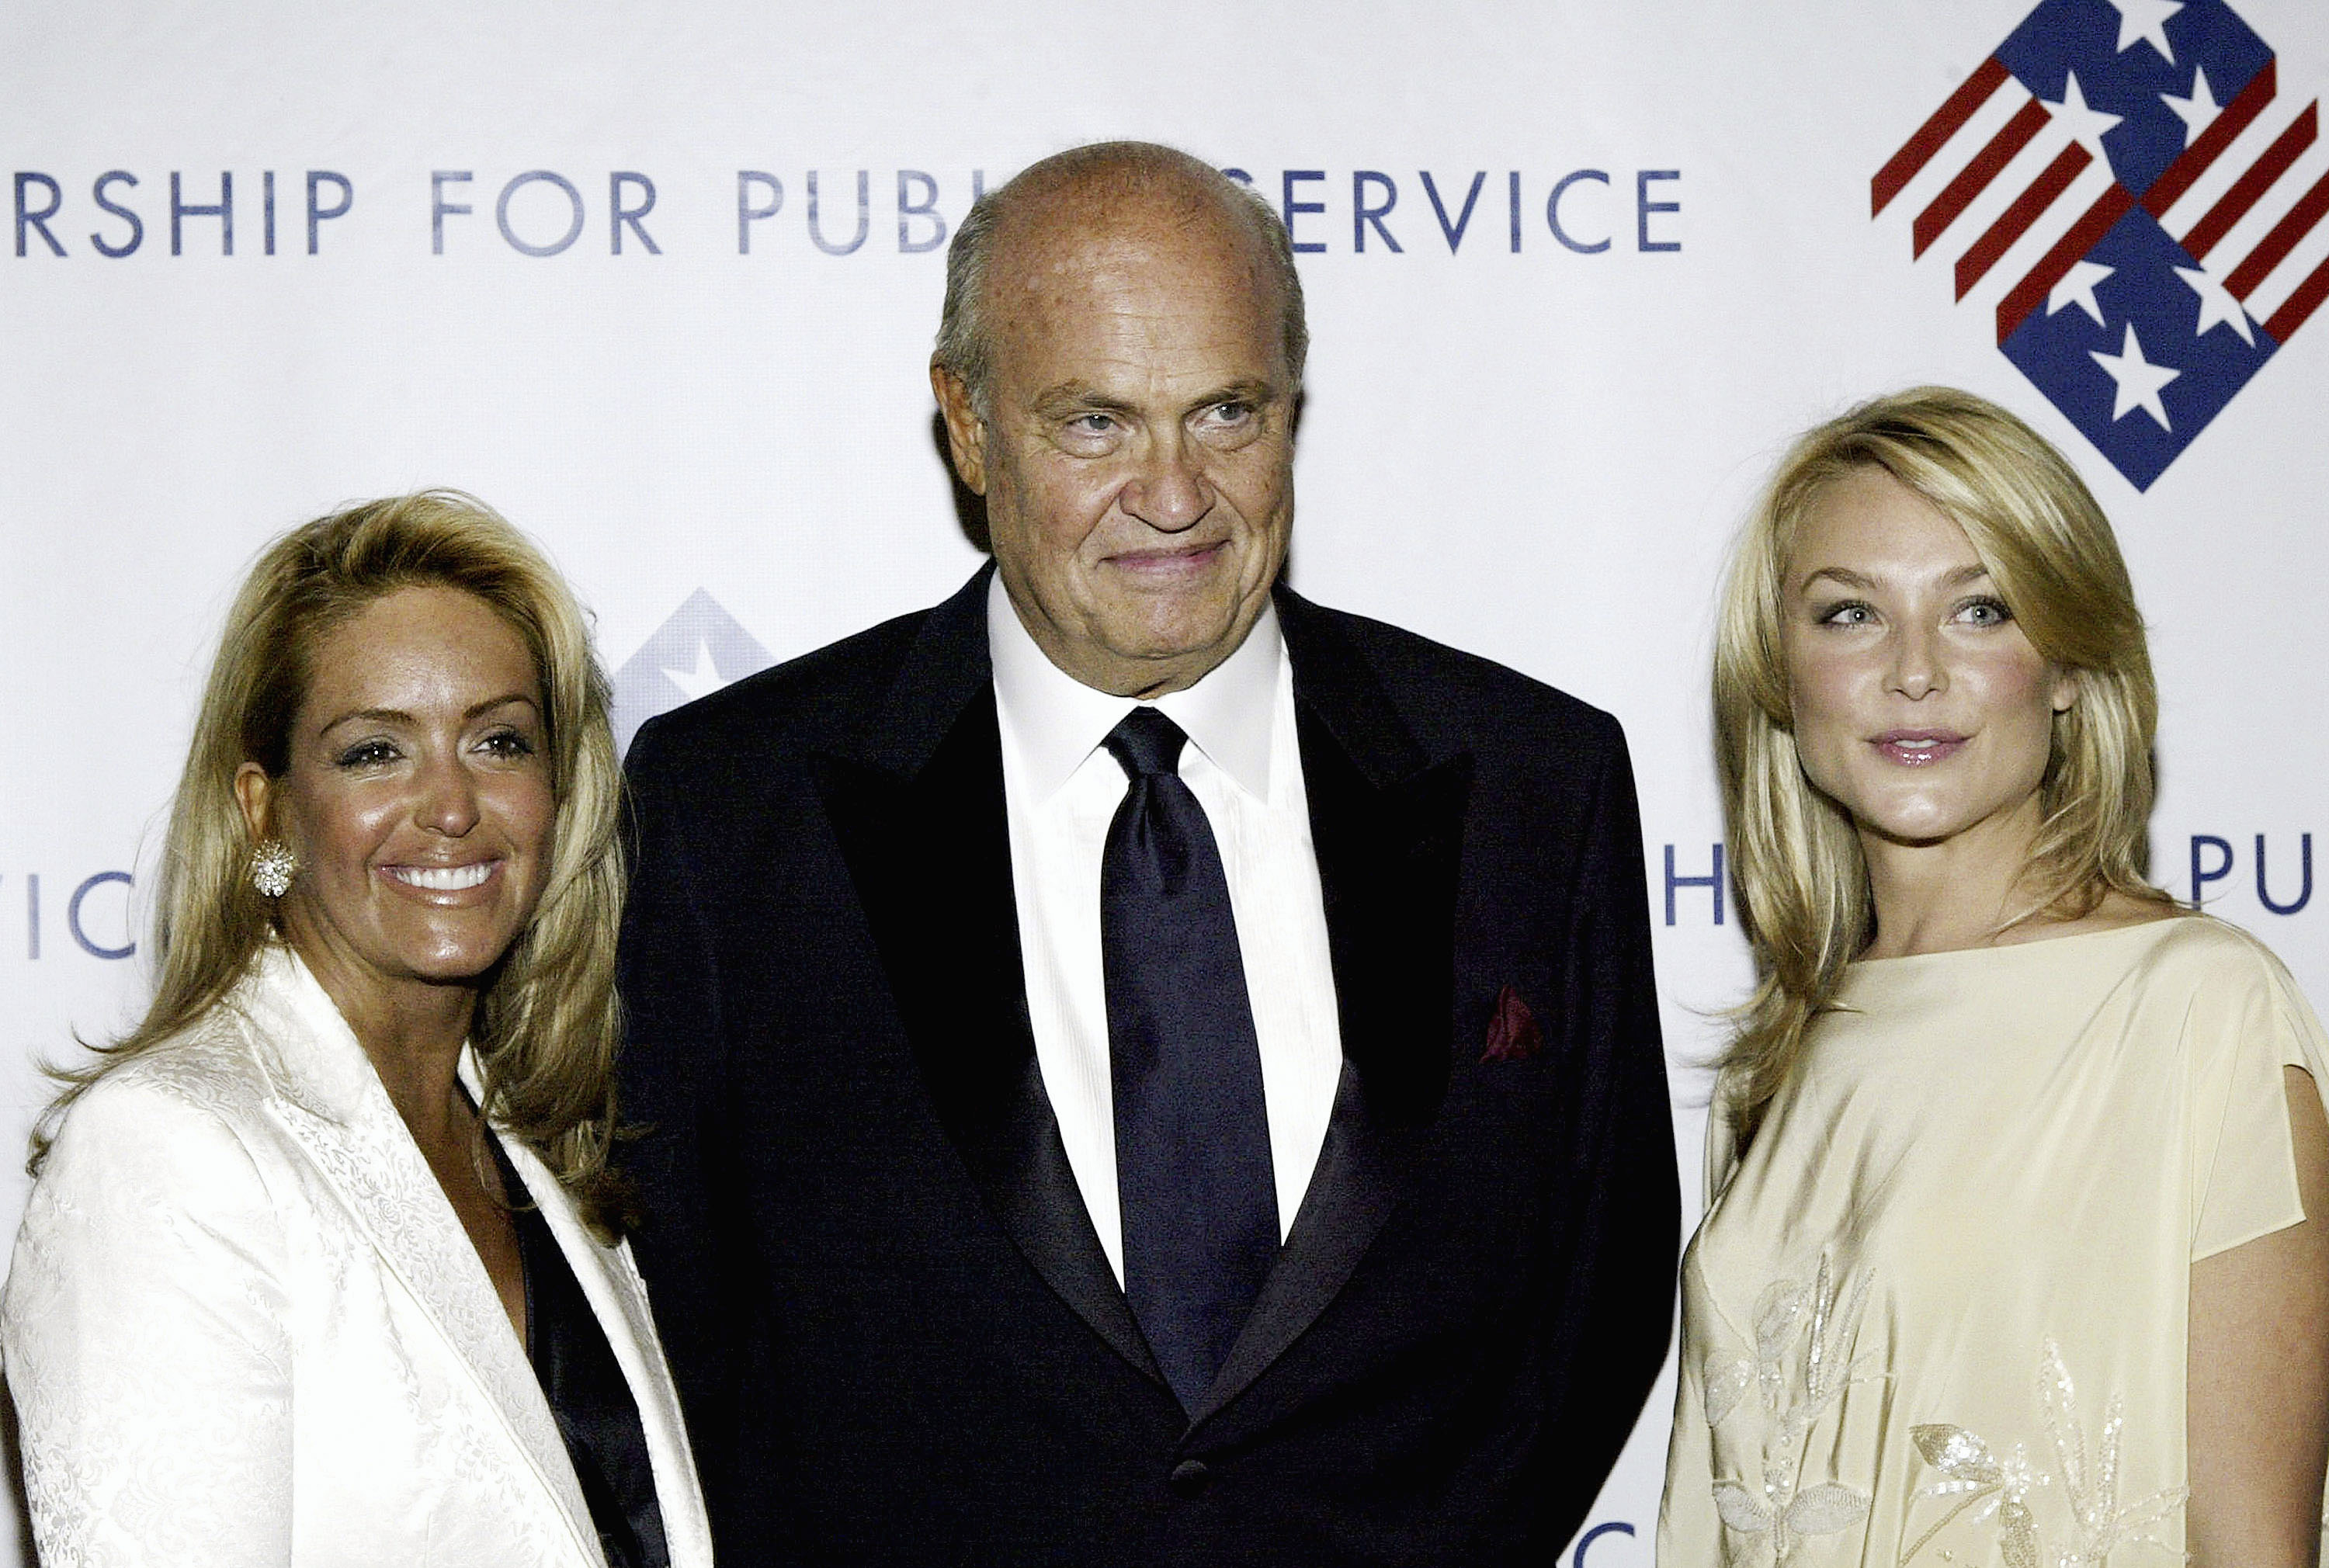 Former Senator Fred Thompson (center) with his wife Jeri (left) and actress Elizabeth Rohm  in 2004. (Getty)